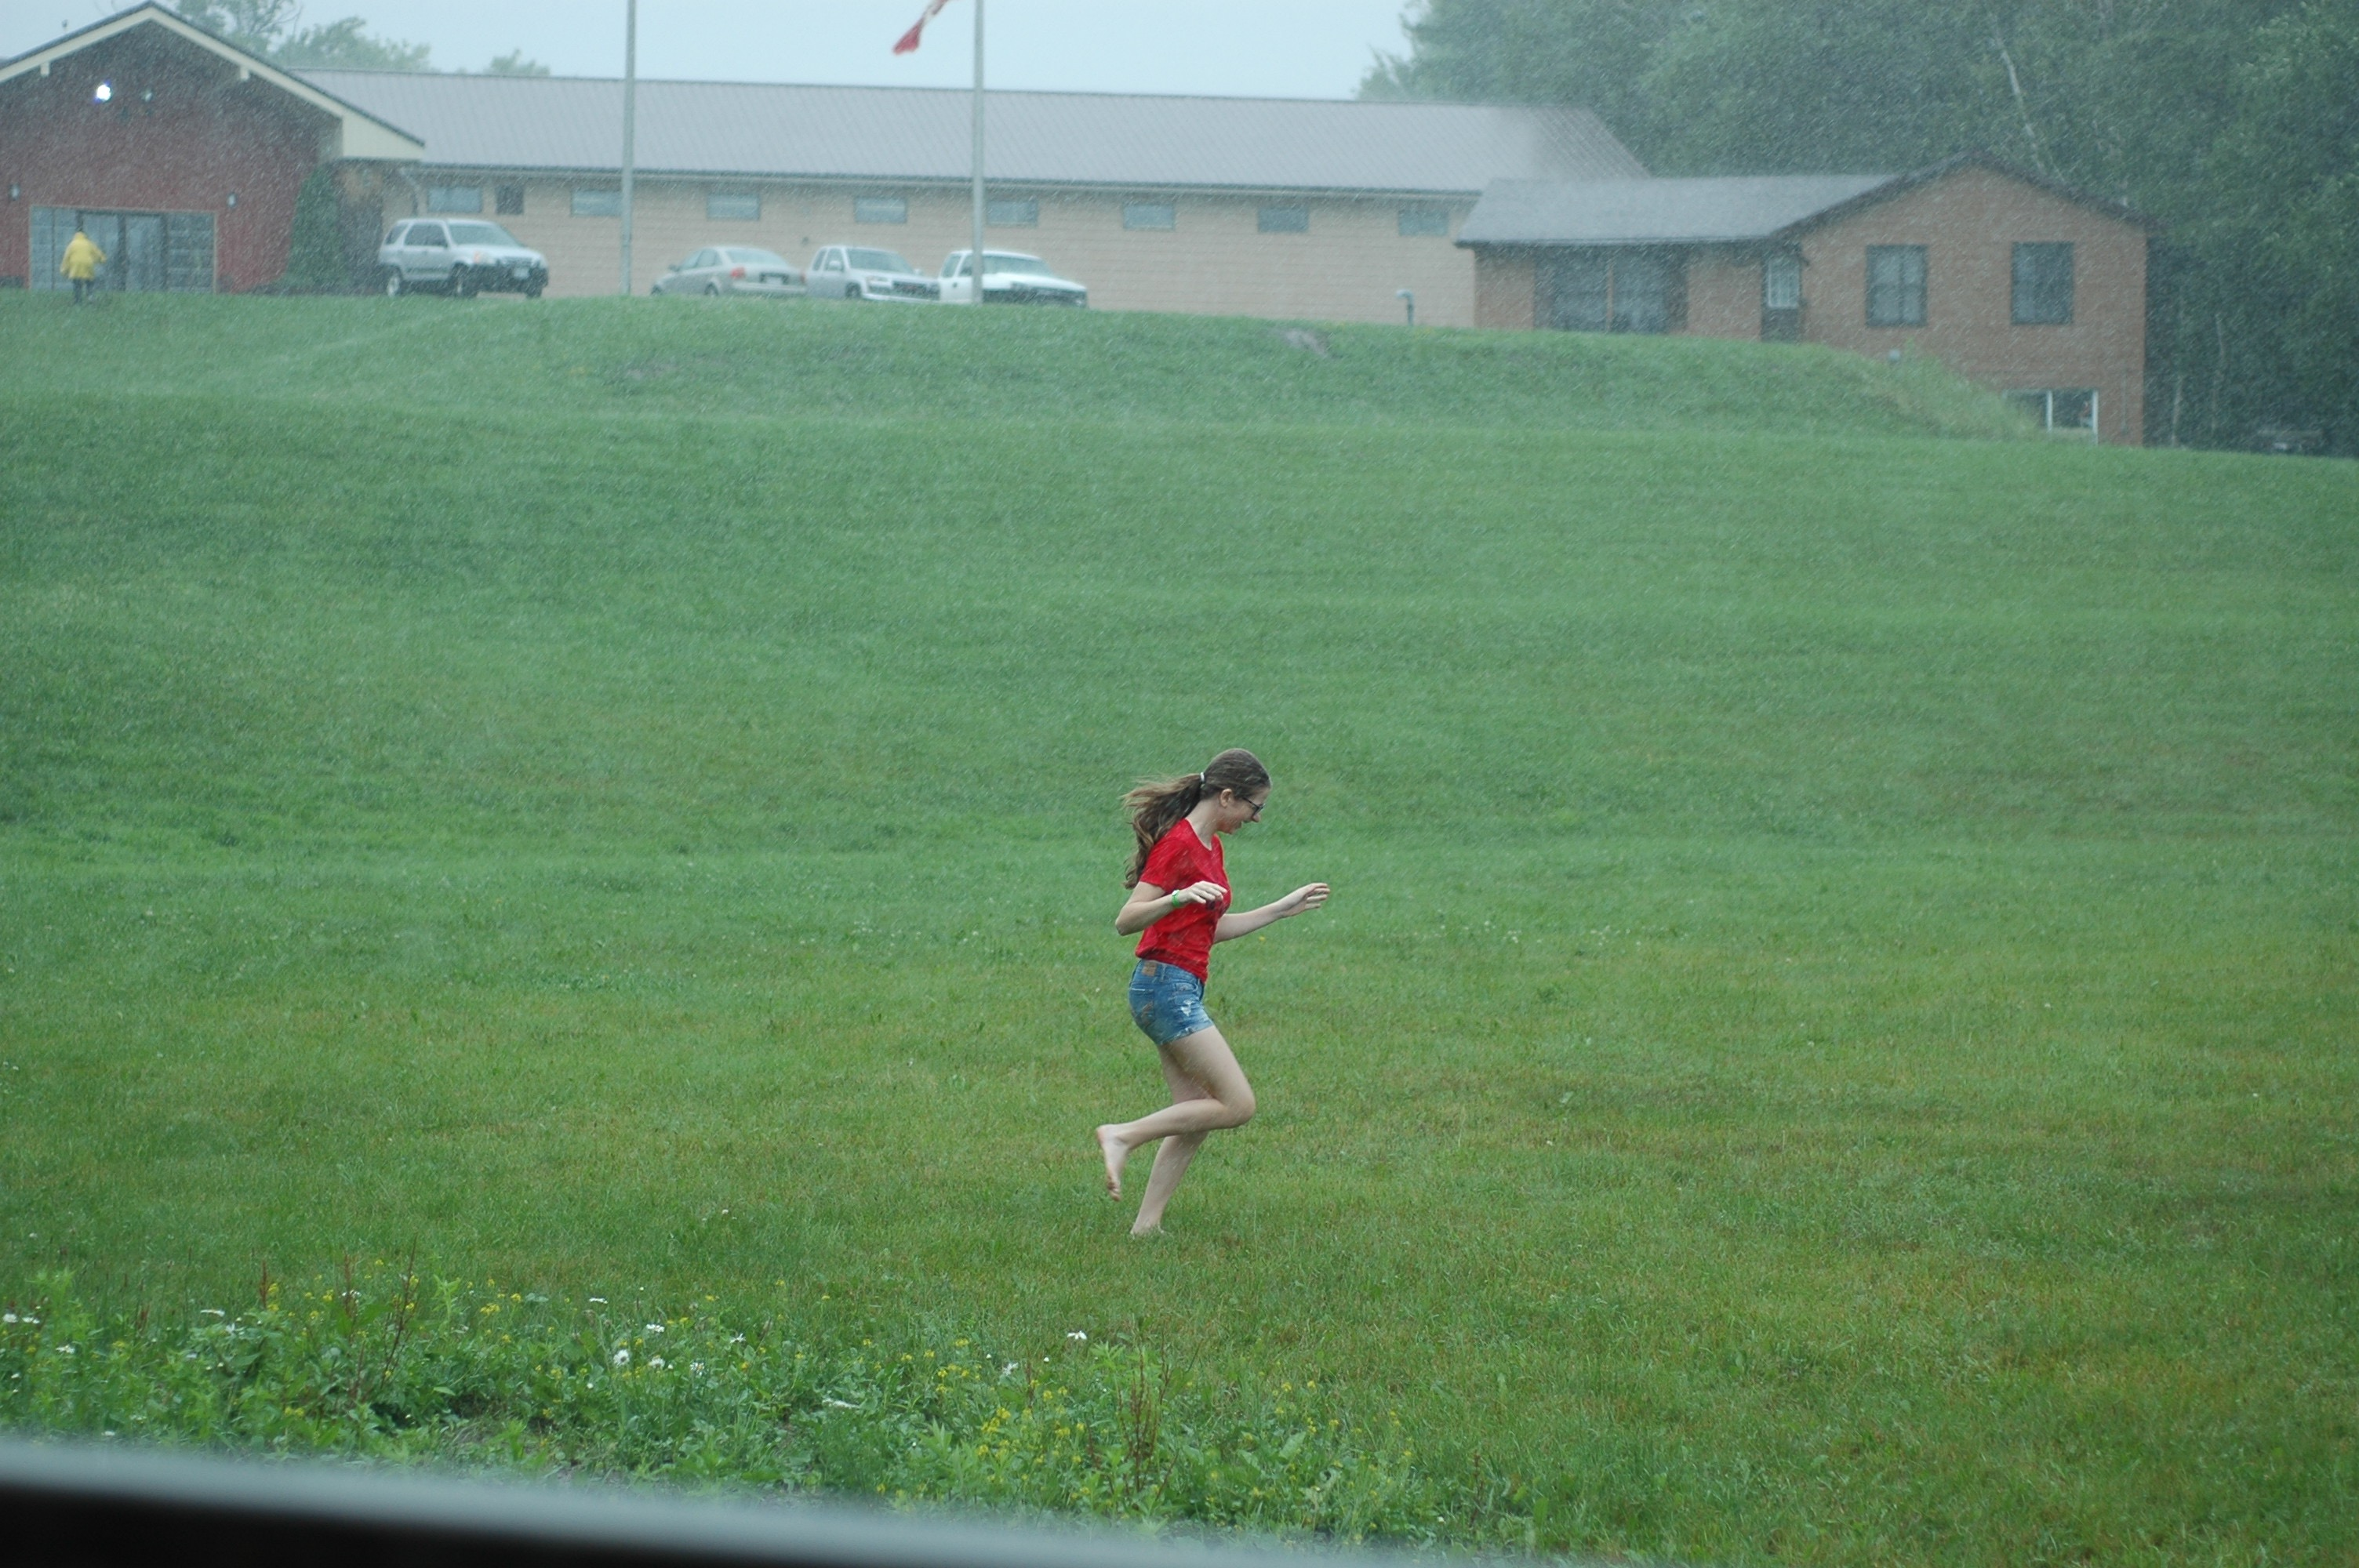 Camper having fun in the rain.